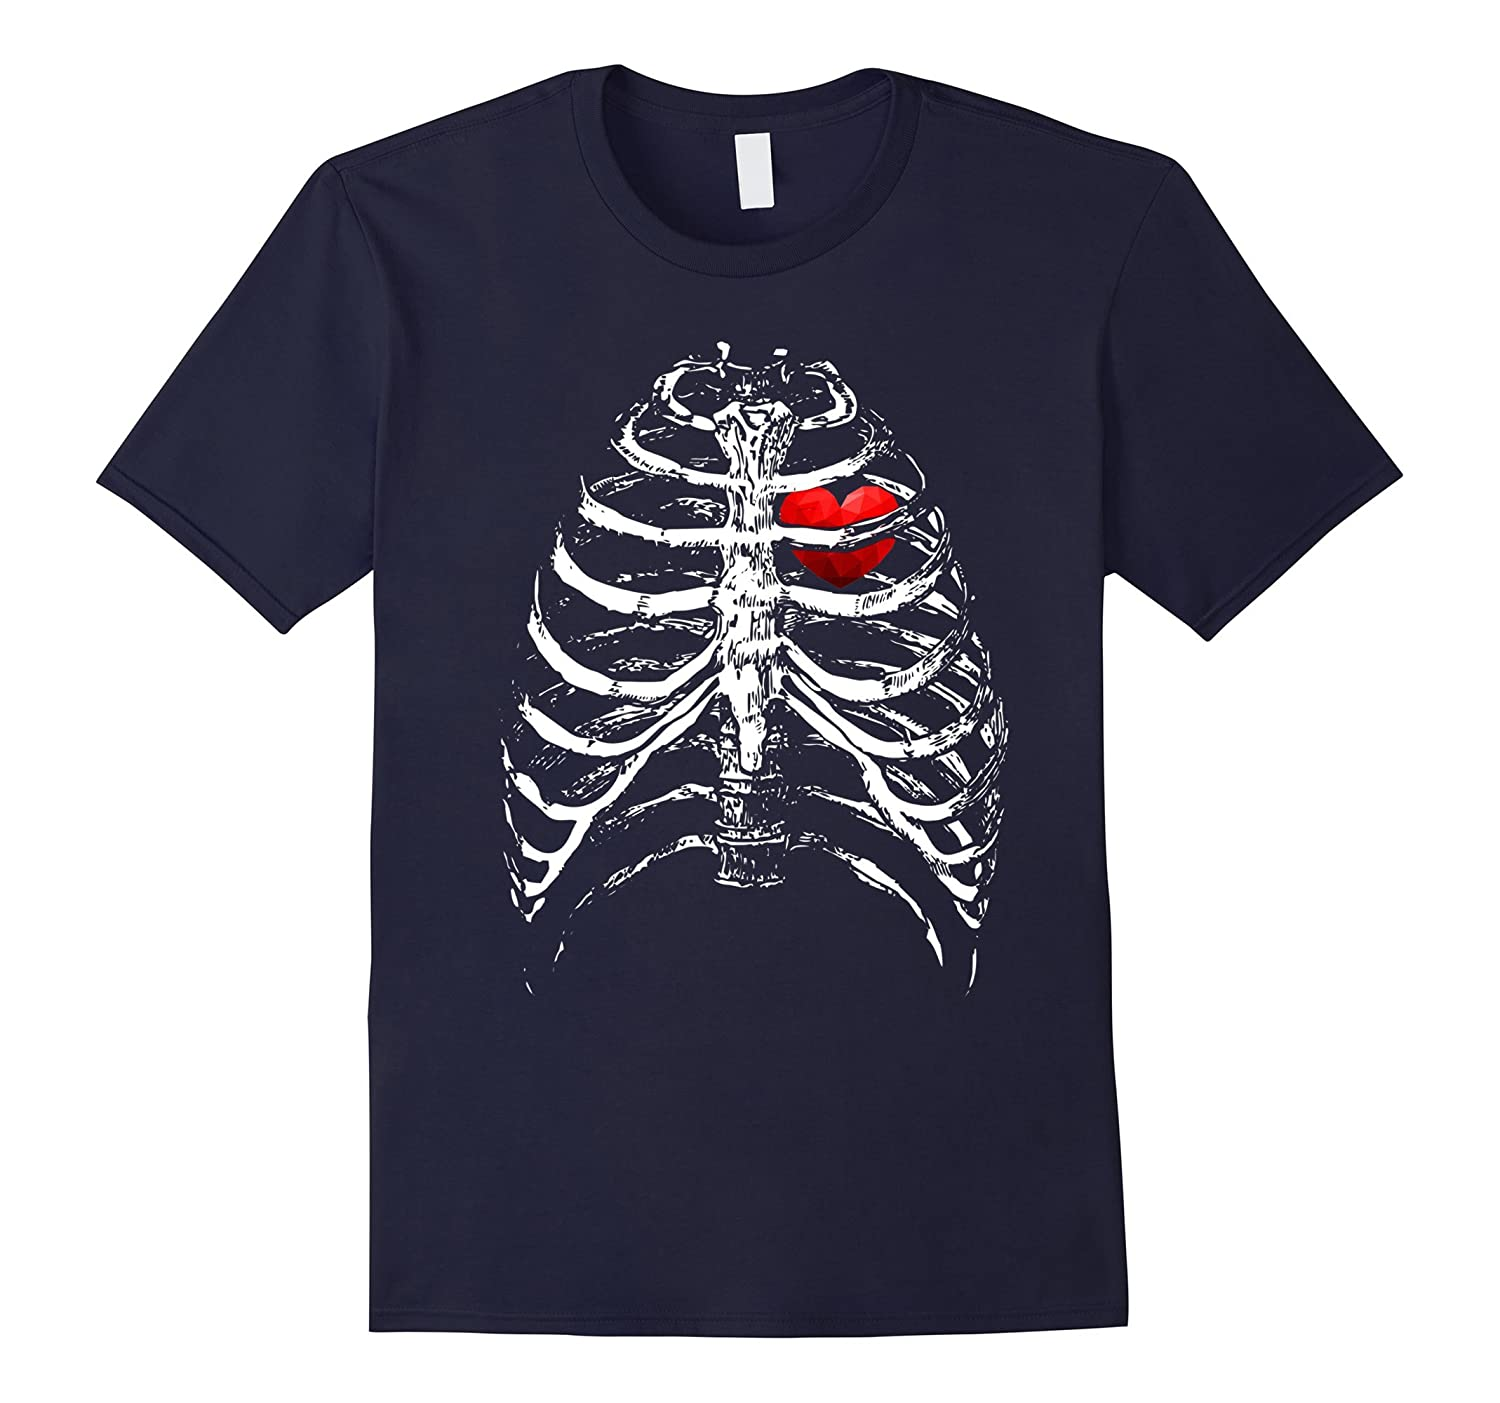 Skeleton Xray Rib Cage Bones Heart - Black Halloween T-Shirt